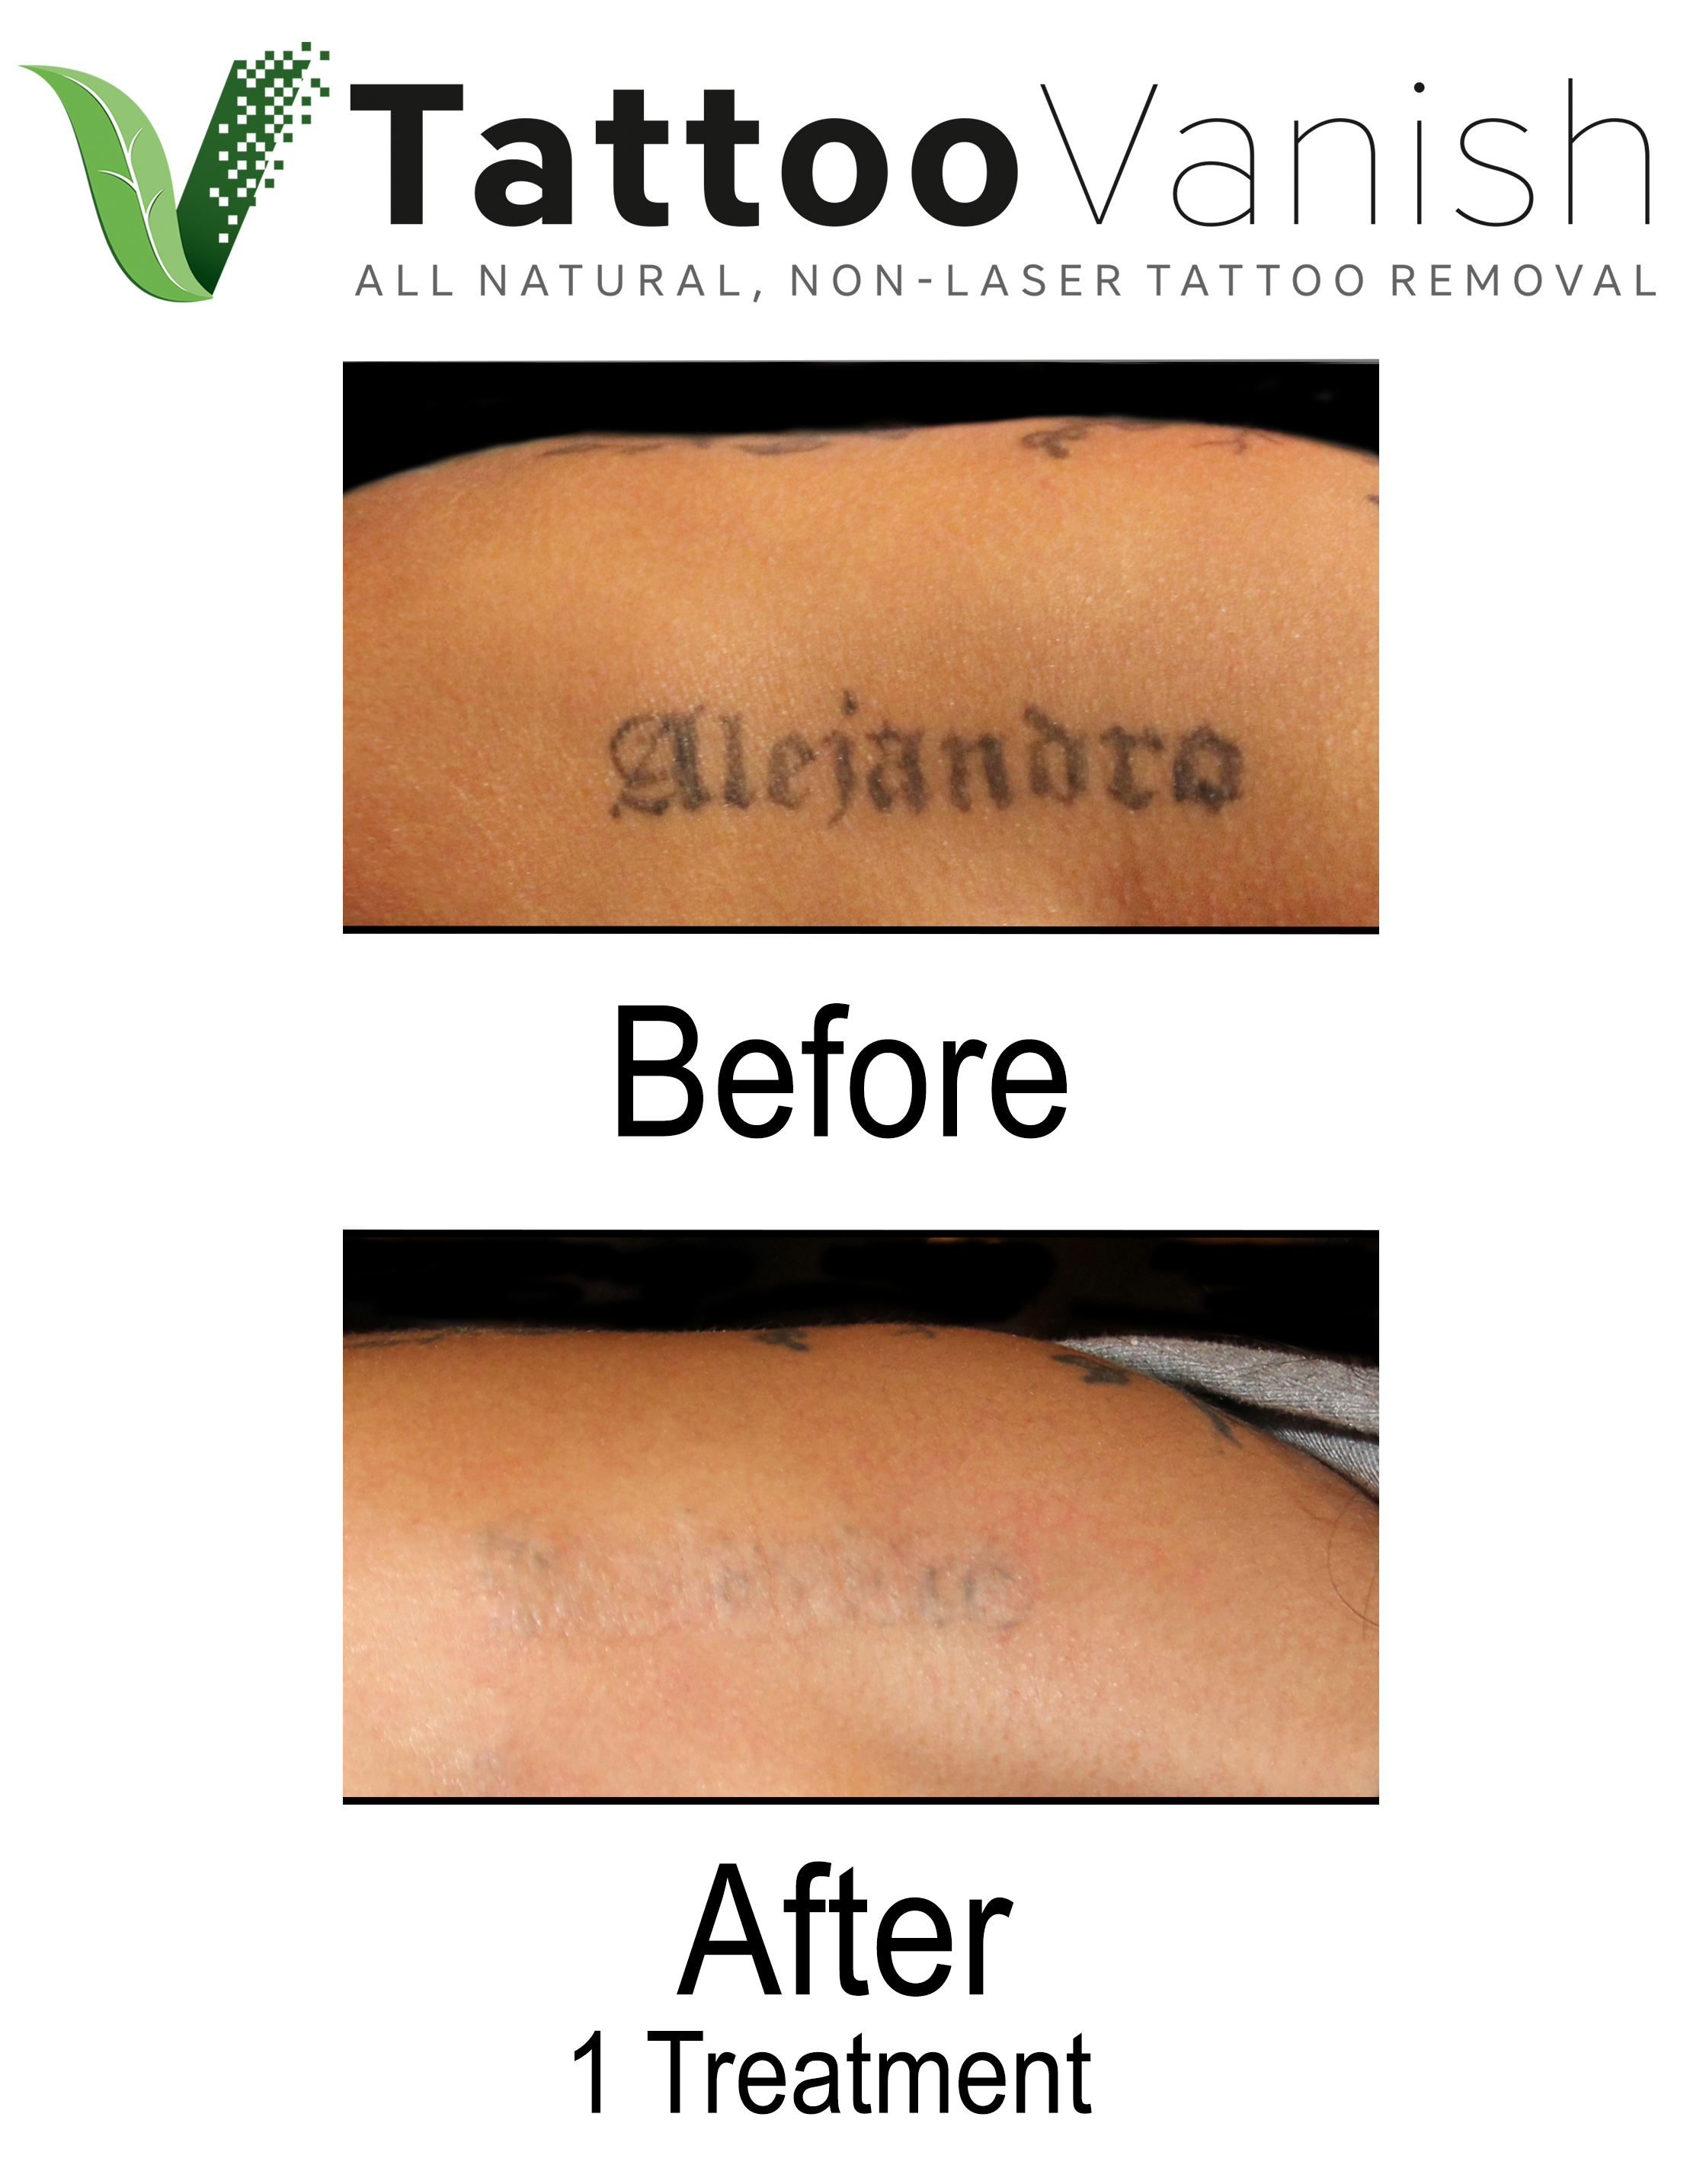 Before and after tattoo vanish procedure.